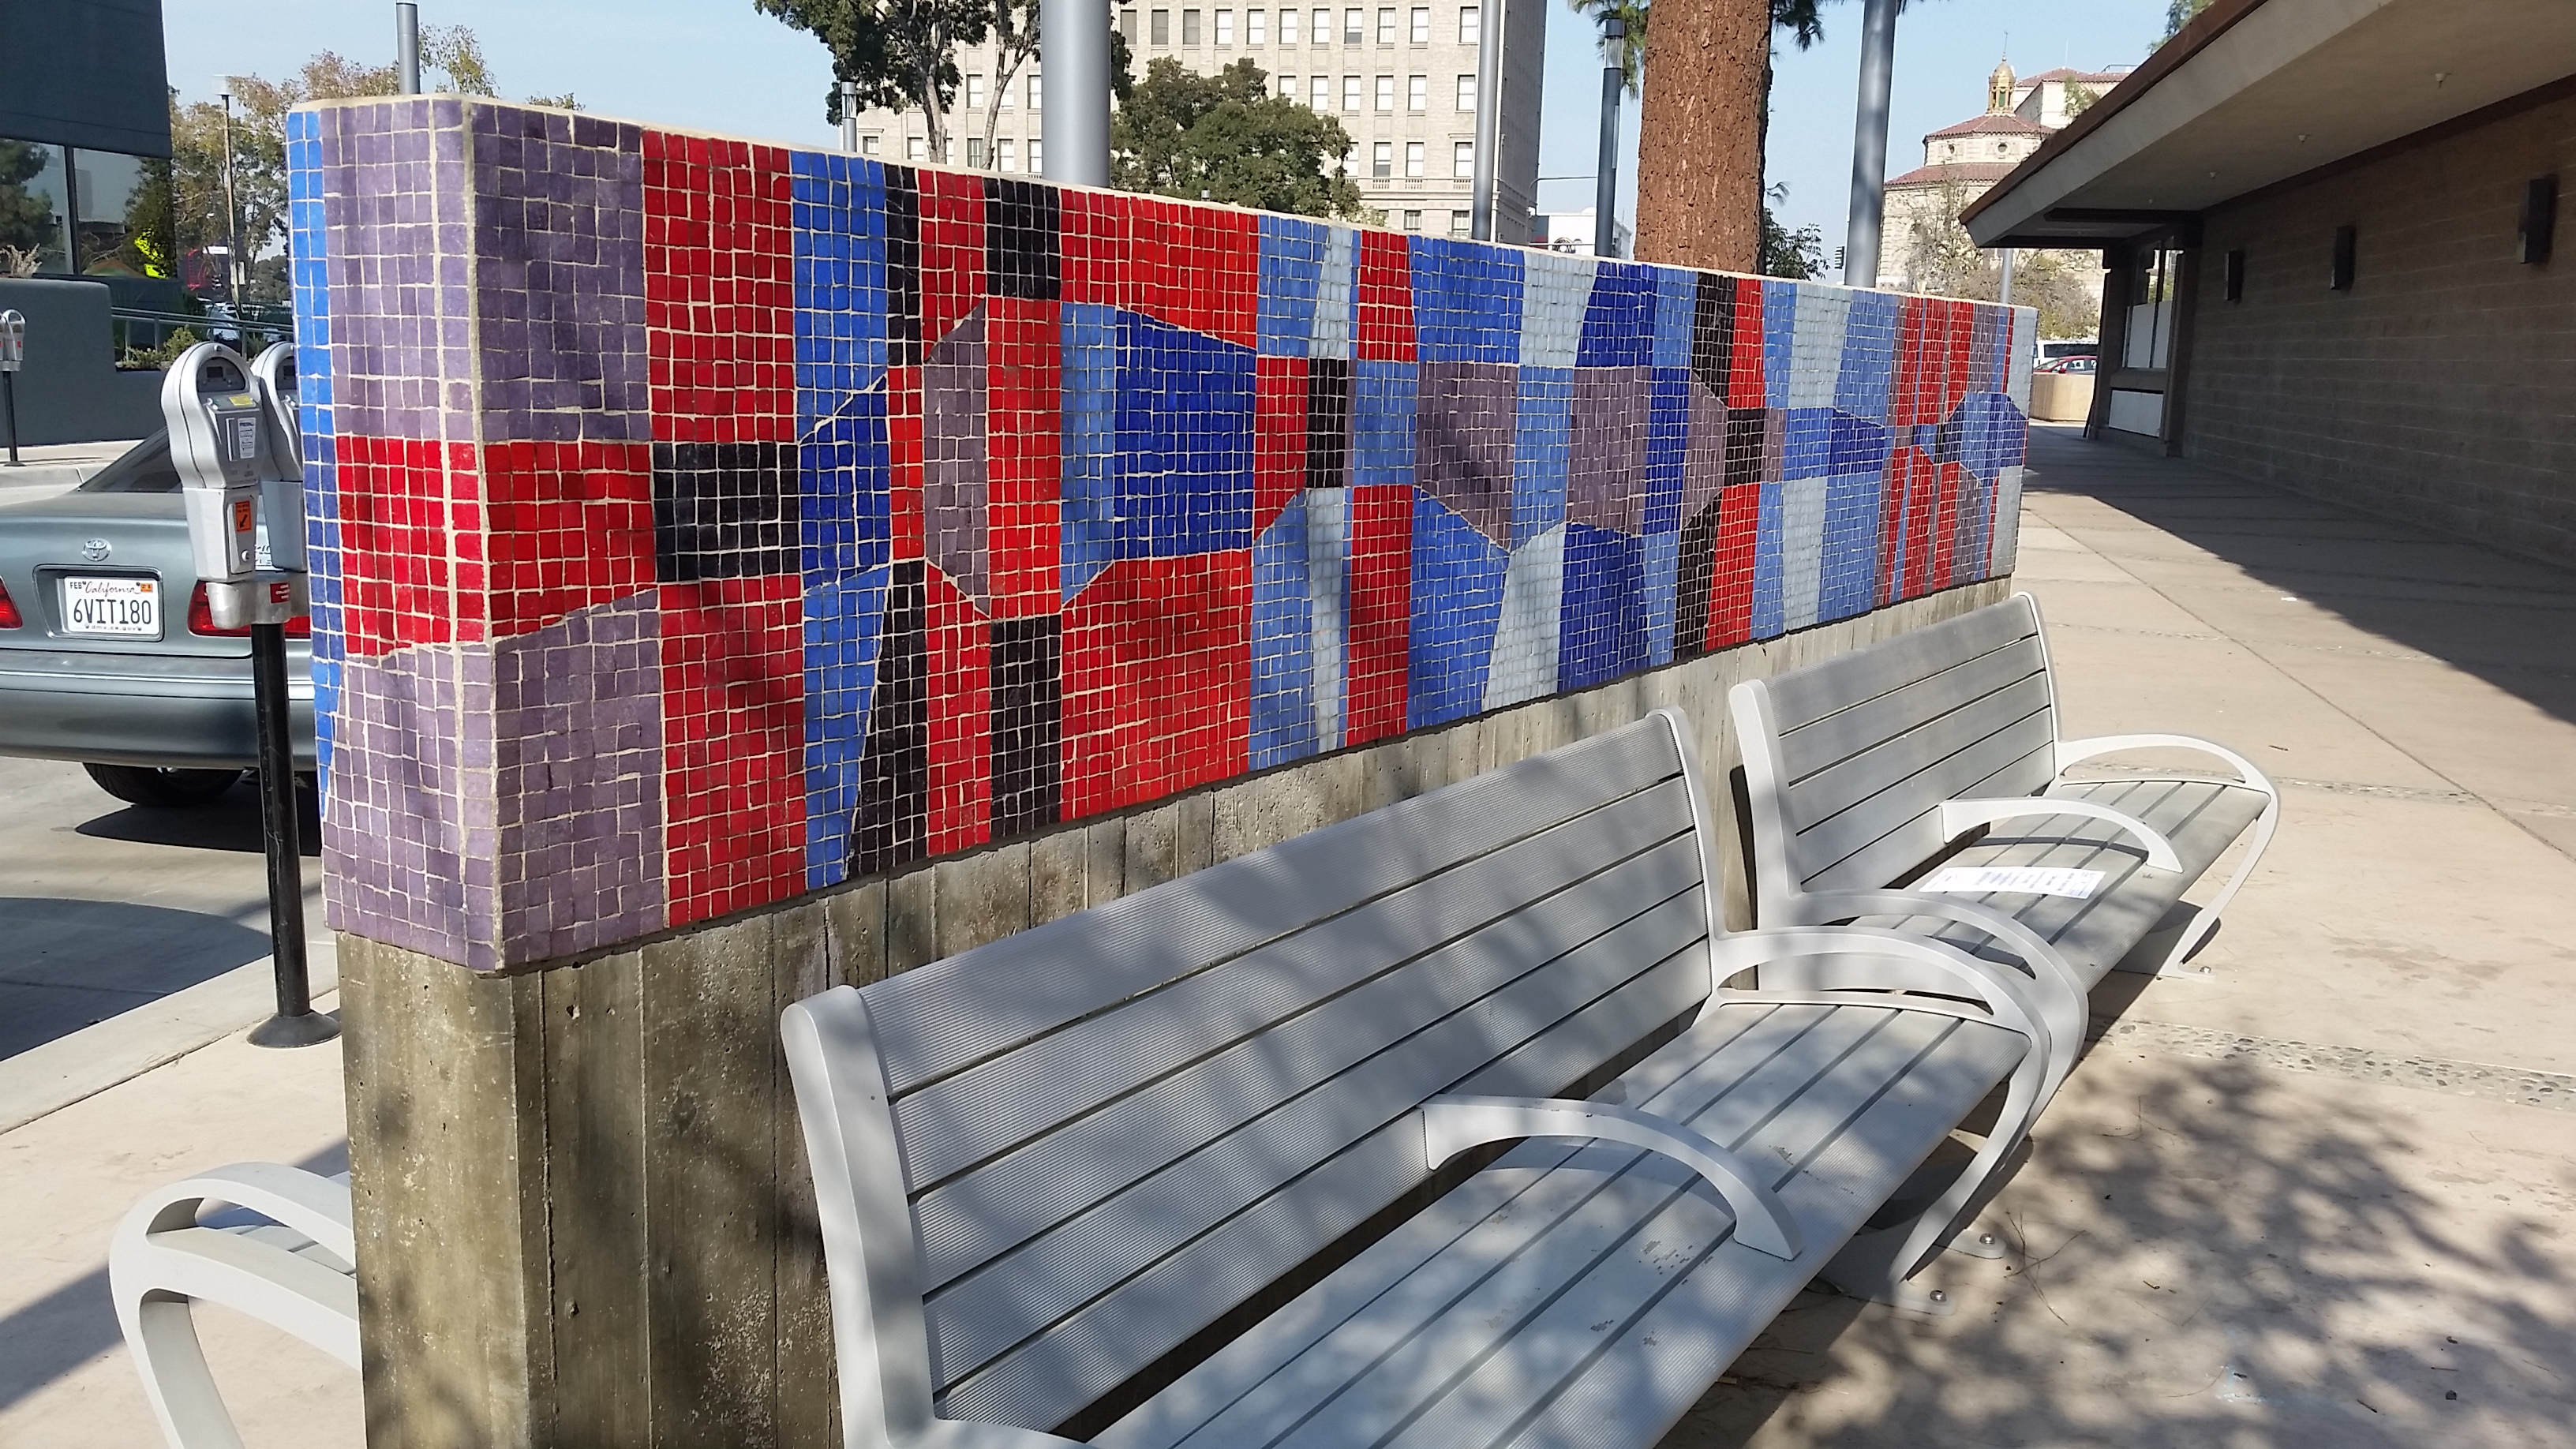 Mosaic benches